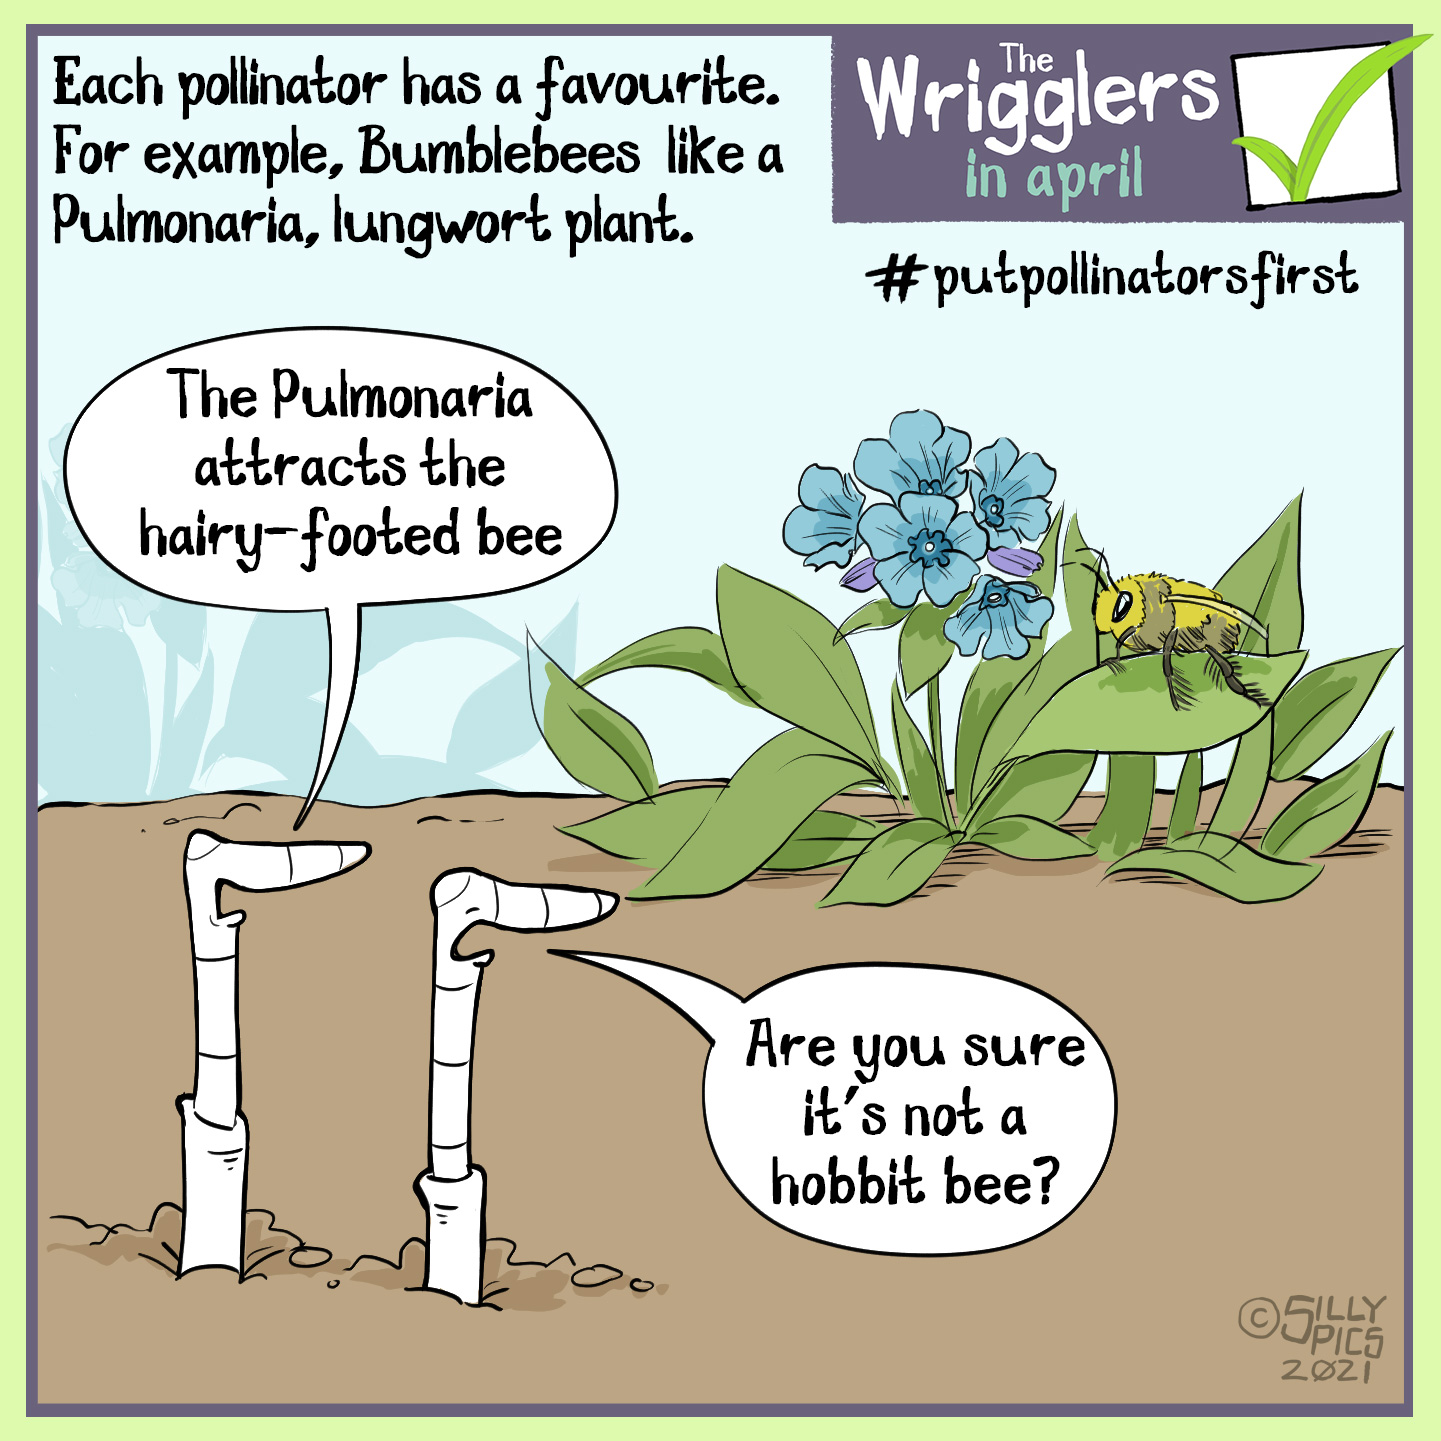 "gardening cartoon from the wrigglers about #putpollinatorsfirst - Each pollinator has a favourite plant, for example the hairy footed bumble bee likes the pulmonary, lungwort plant. In this cartoon one bee is talking to the other while looking at a lungwort plant with a hairy footed bee on it. One work says, ""the pulmonary attracts the hairy footed bee"" The other work says, ""are you sure that's not a hobbit bee?"""